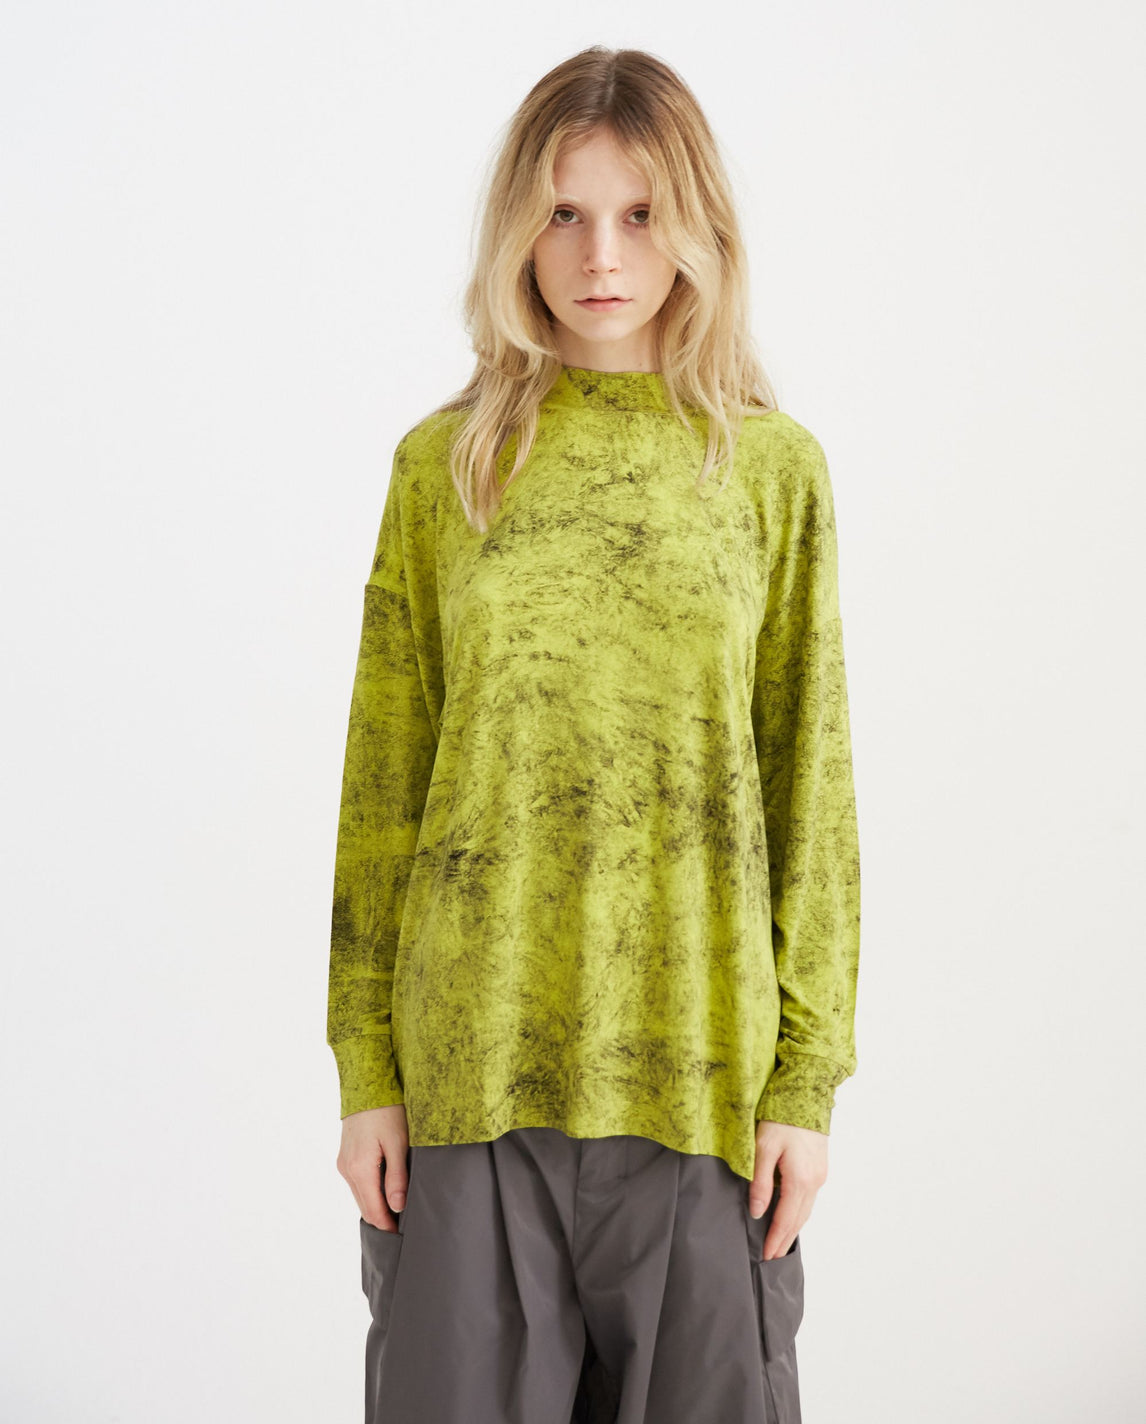 Abstract Long Sleeve T-Shirt - Neon Green WOMENS SHINYA KOZUKA